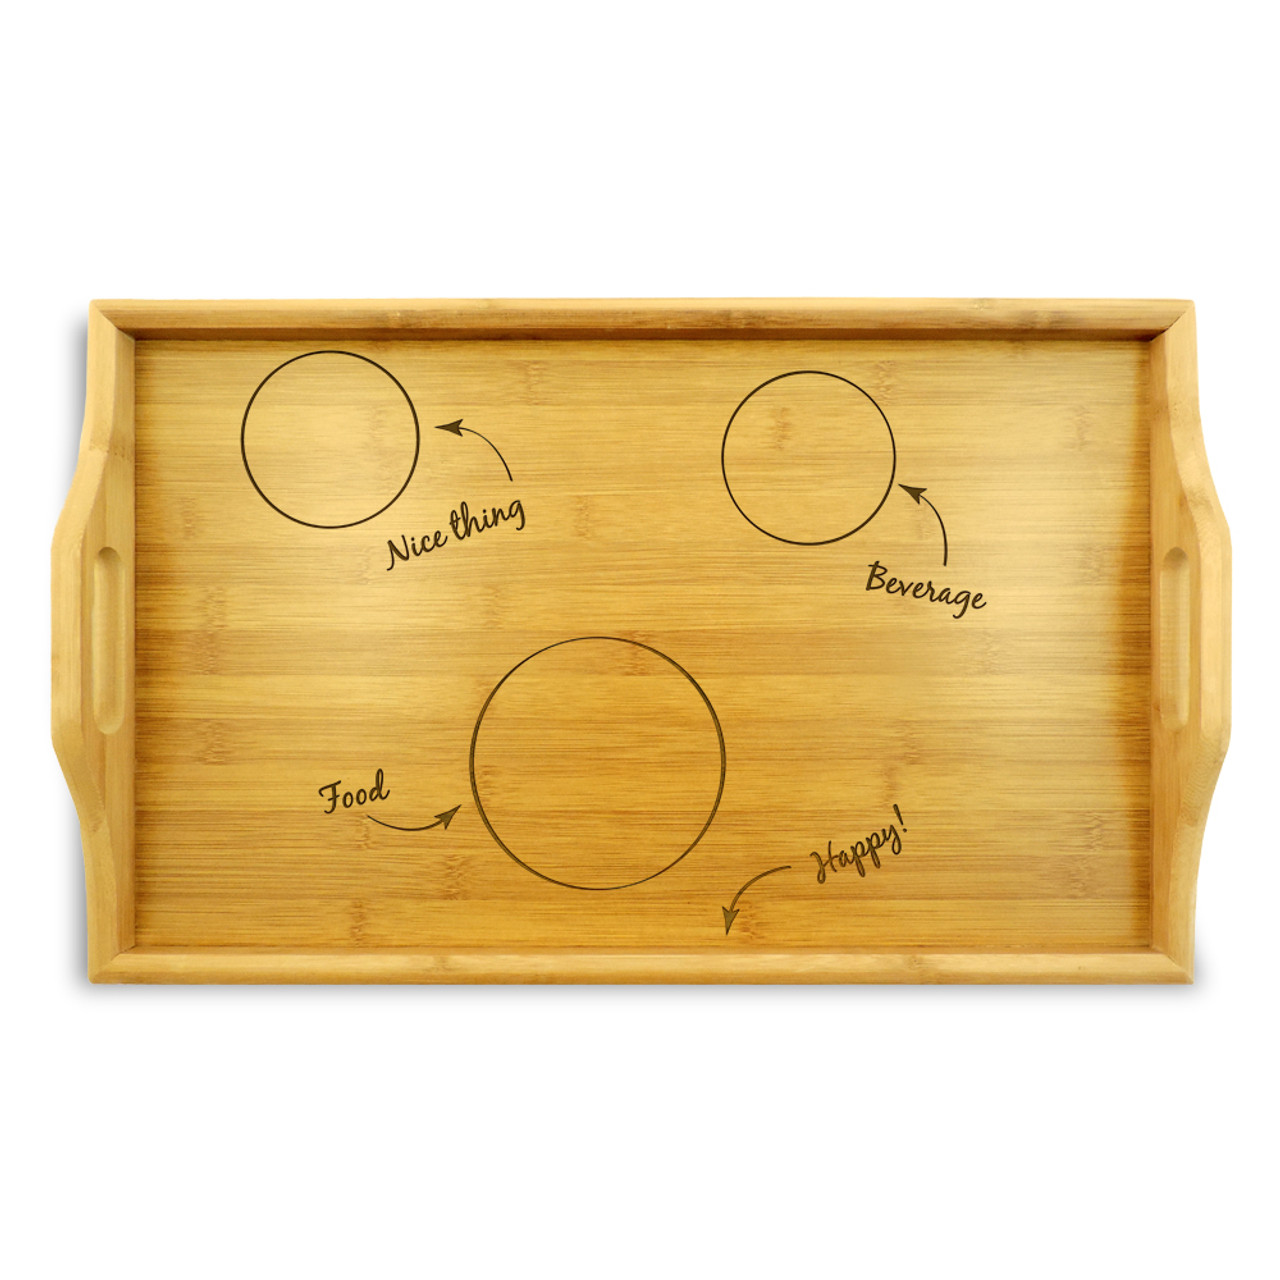 Bamboo Tray With Diy Breakfast In Bed Design. Order Online